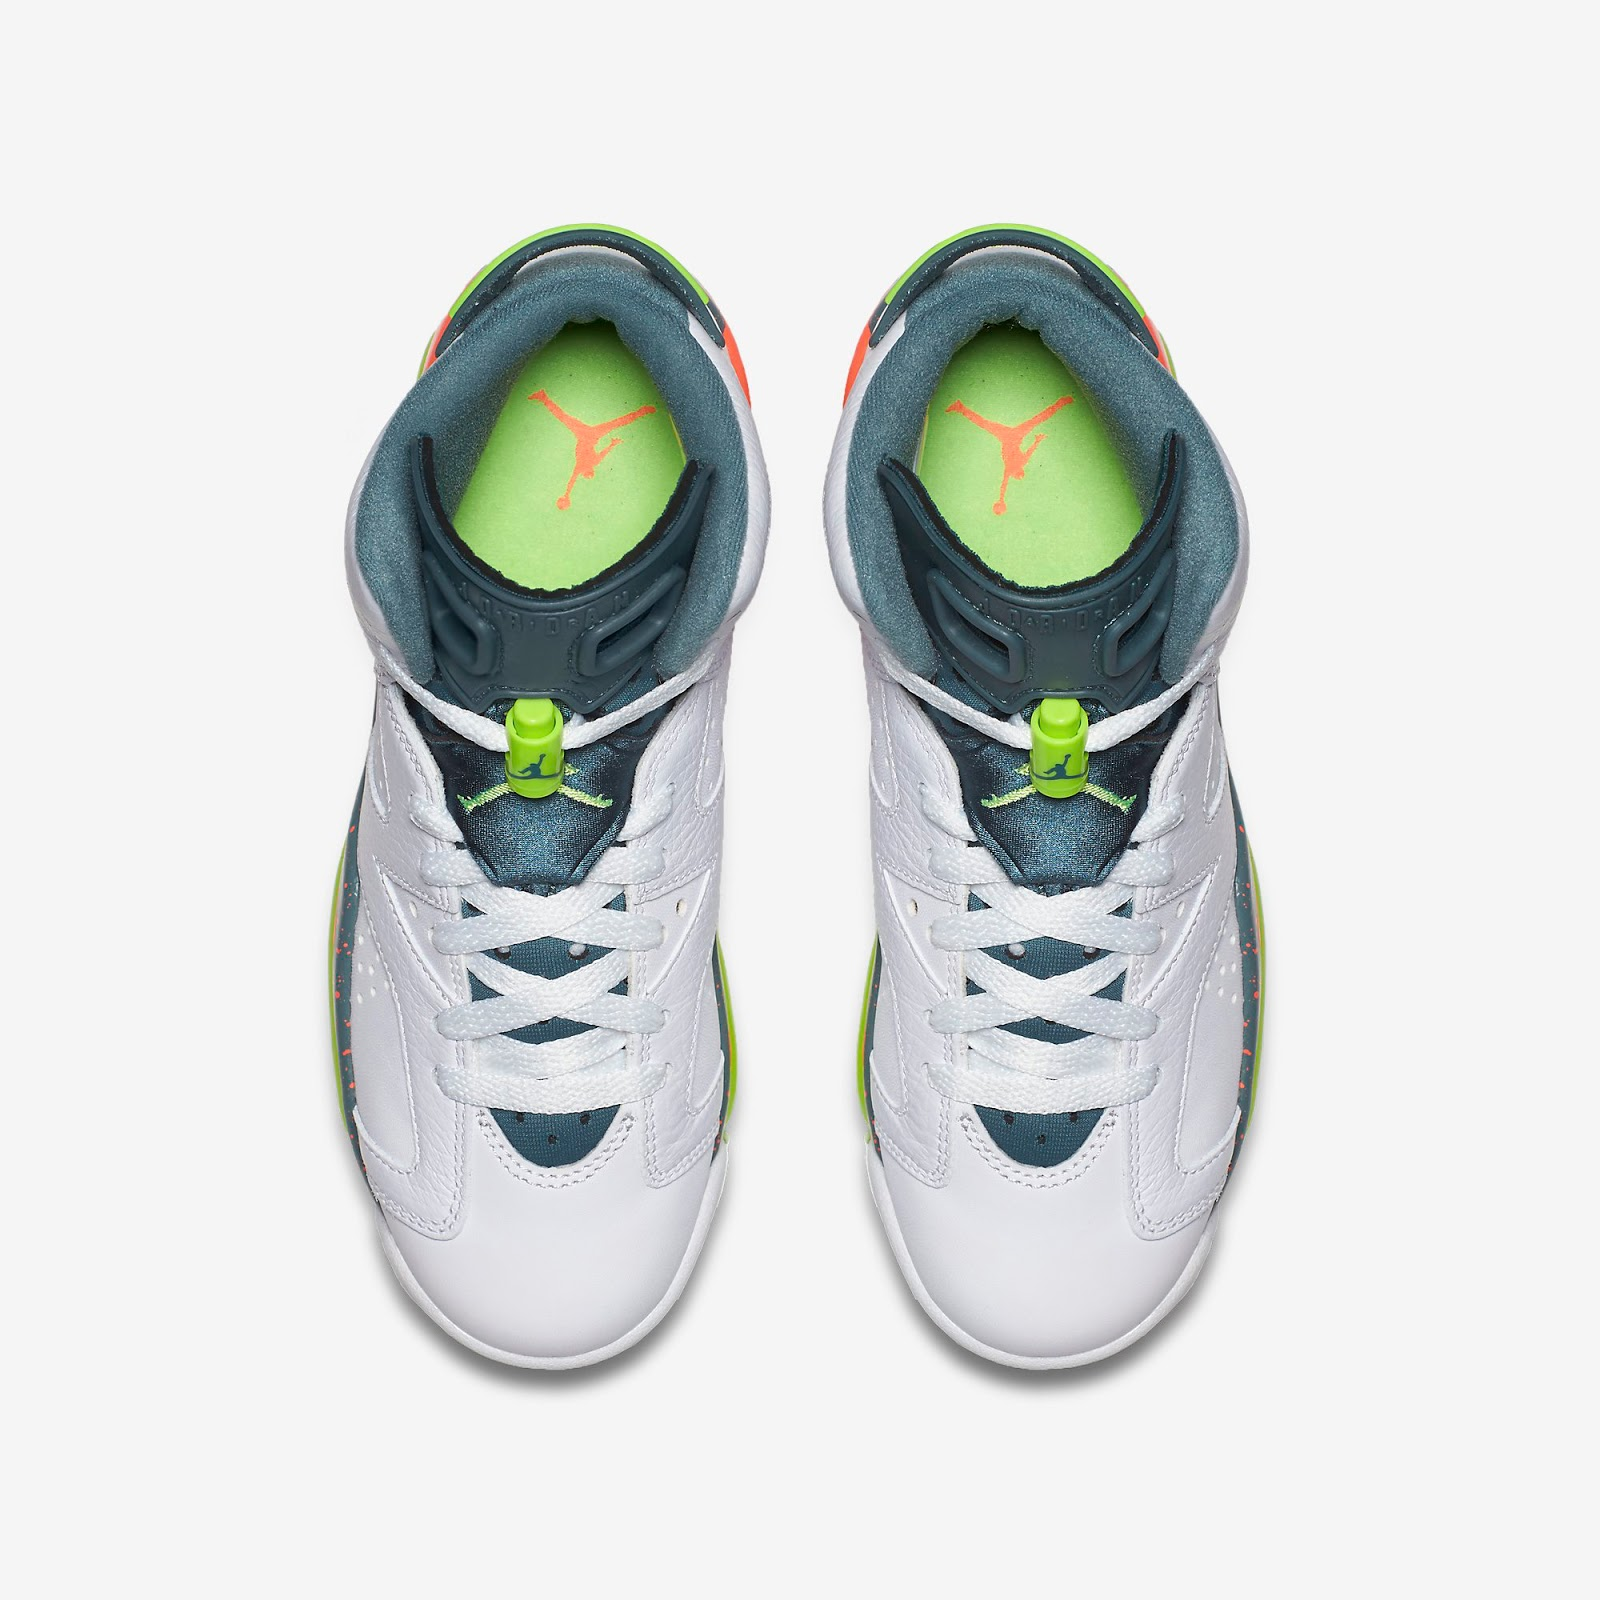 eecfd198dbc clearance air jordan 6 mango white ghost green hasta 7d9d8 595ad; new  arrivals ajordanxi your 1 source for sneaker release dates air jordan 6  retro gs white